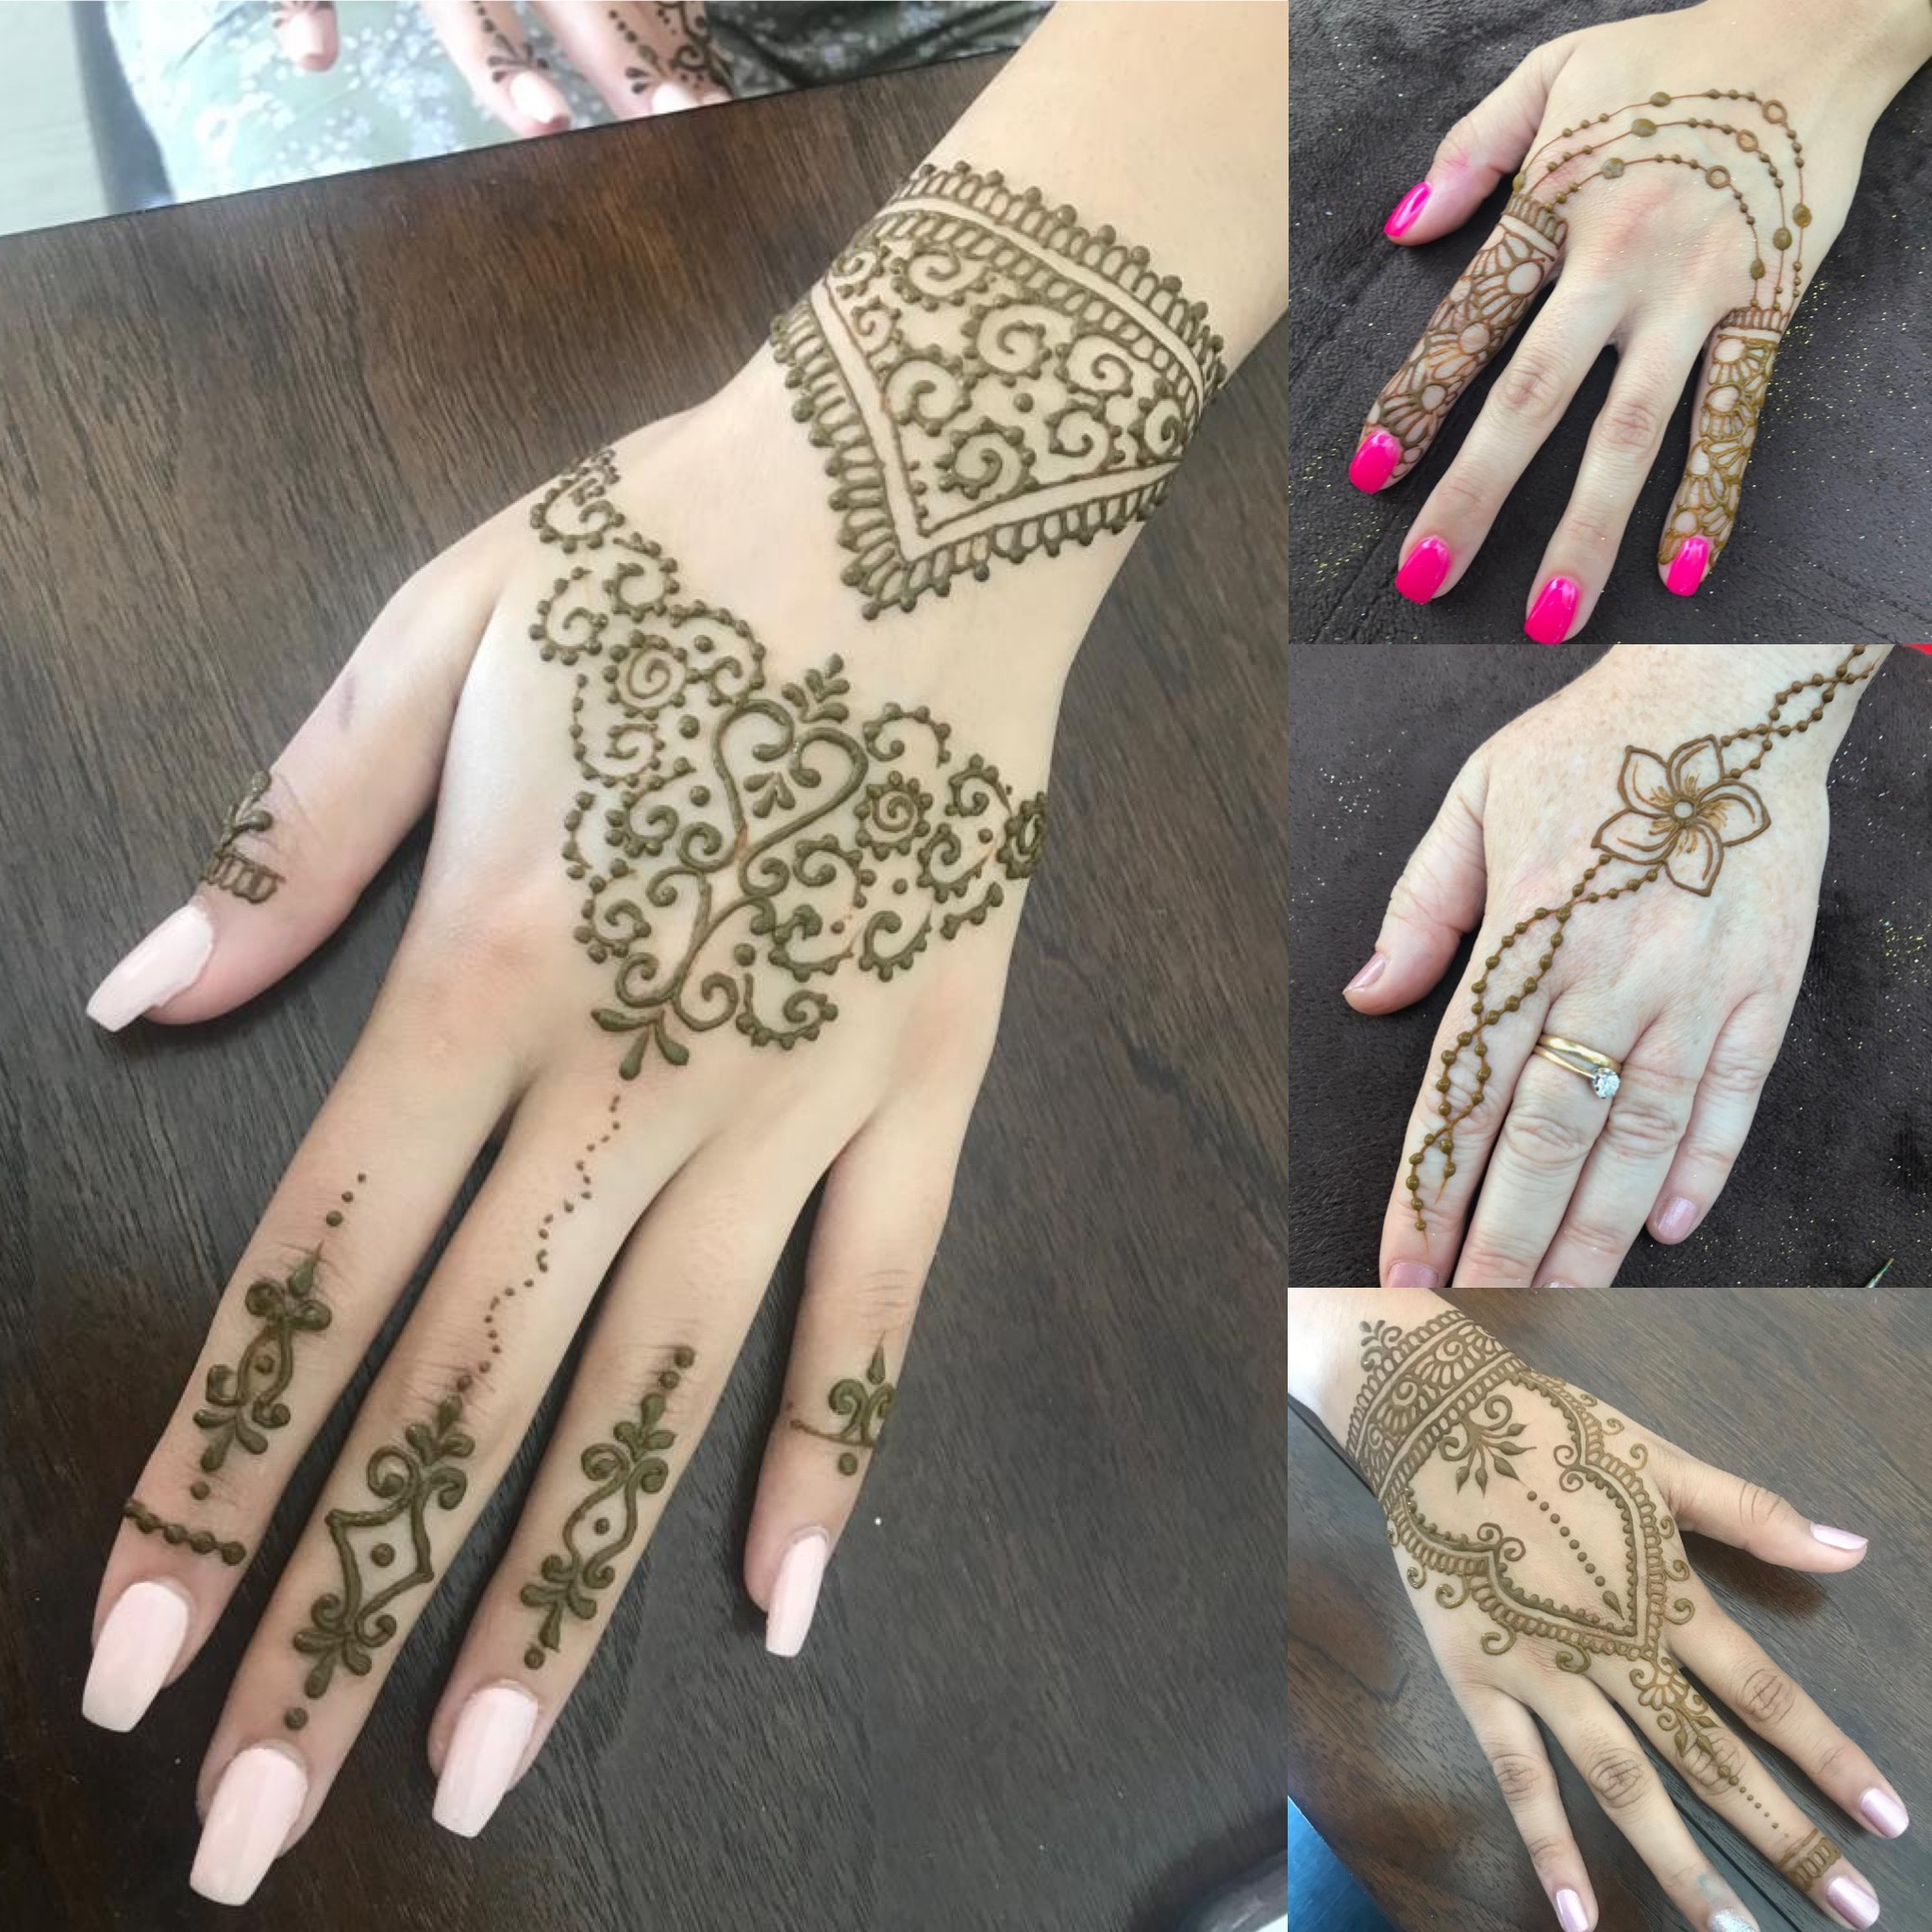 - I hired Madhia for my mendhi function at home and at my sangeet. She was so pleasant to work with and very professional! Everyone loved her. Highly recommend! - Priyanka (9/20/18)